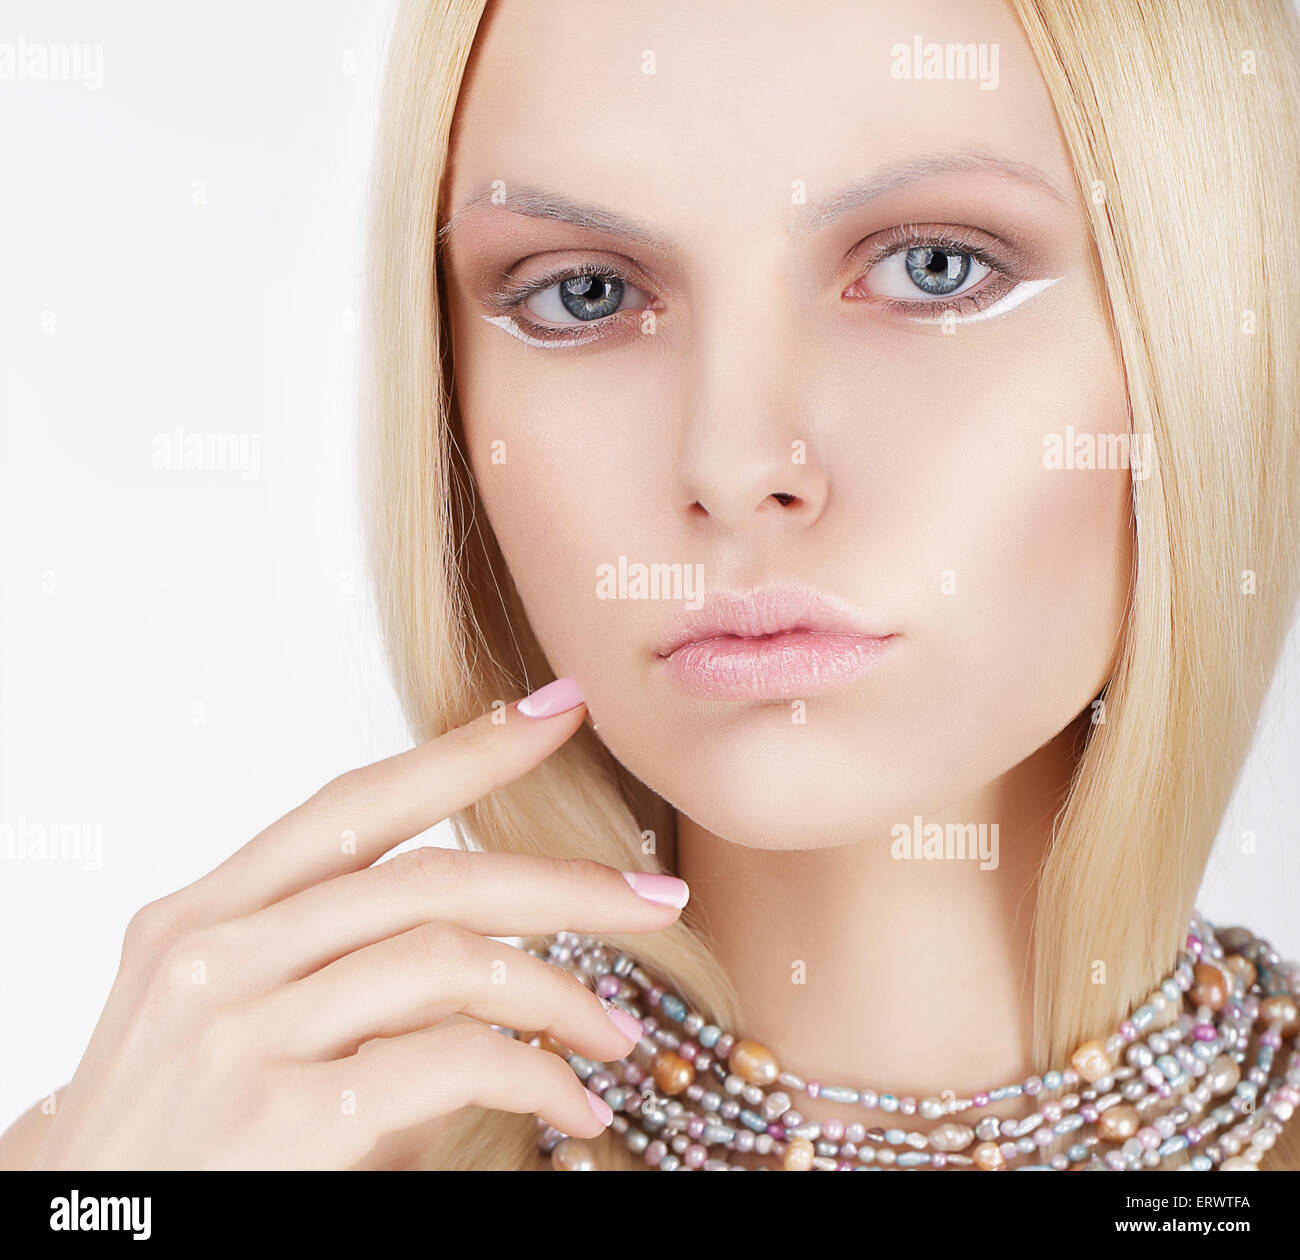 Ravissante blonde sophistiquée Touching her Face Photo Stock